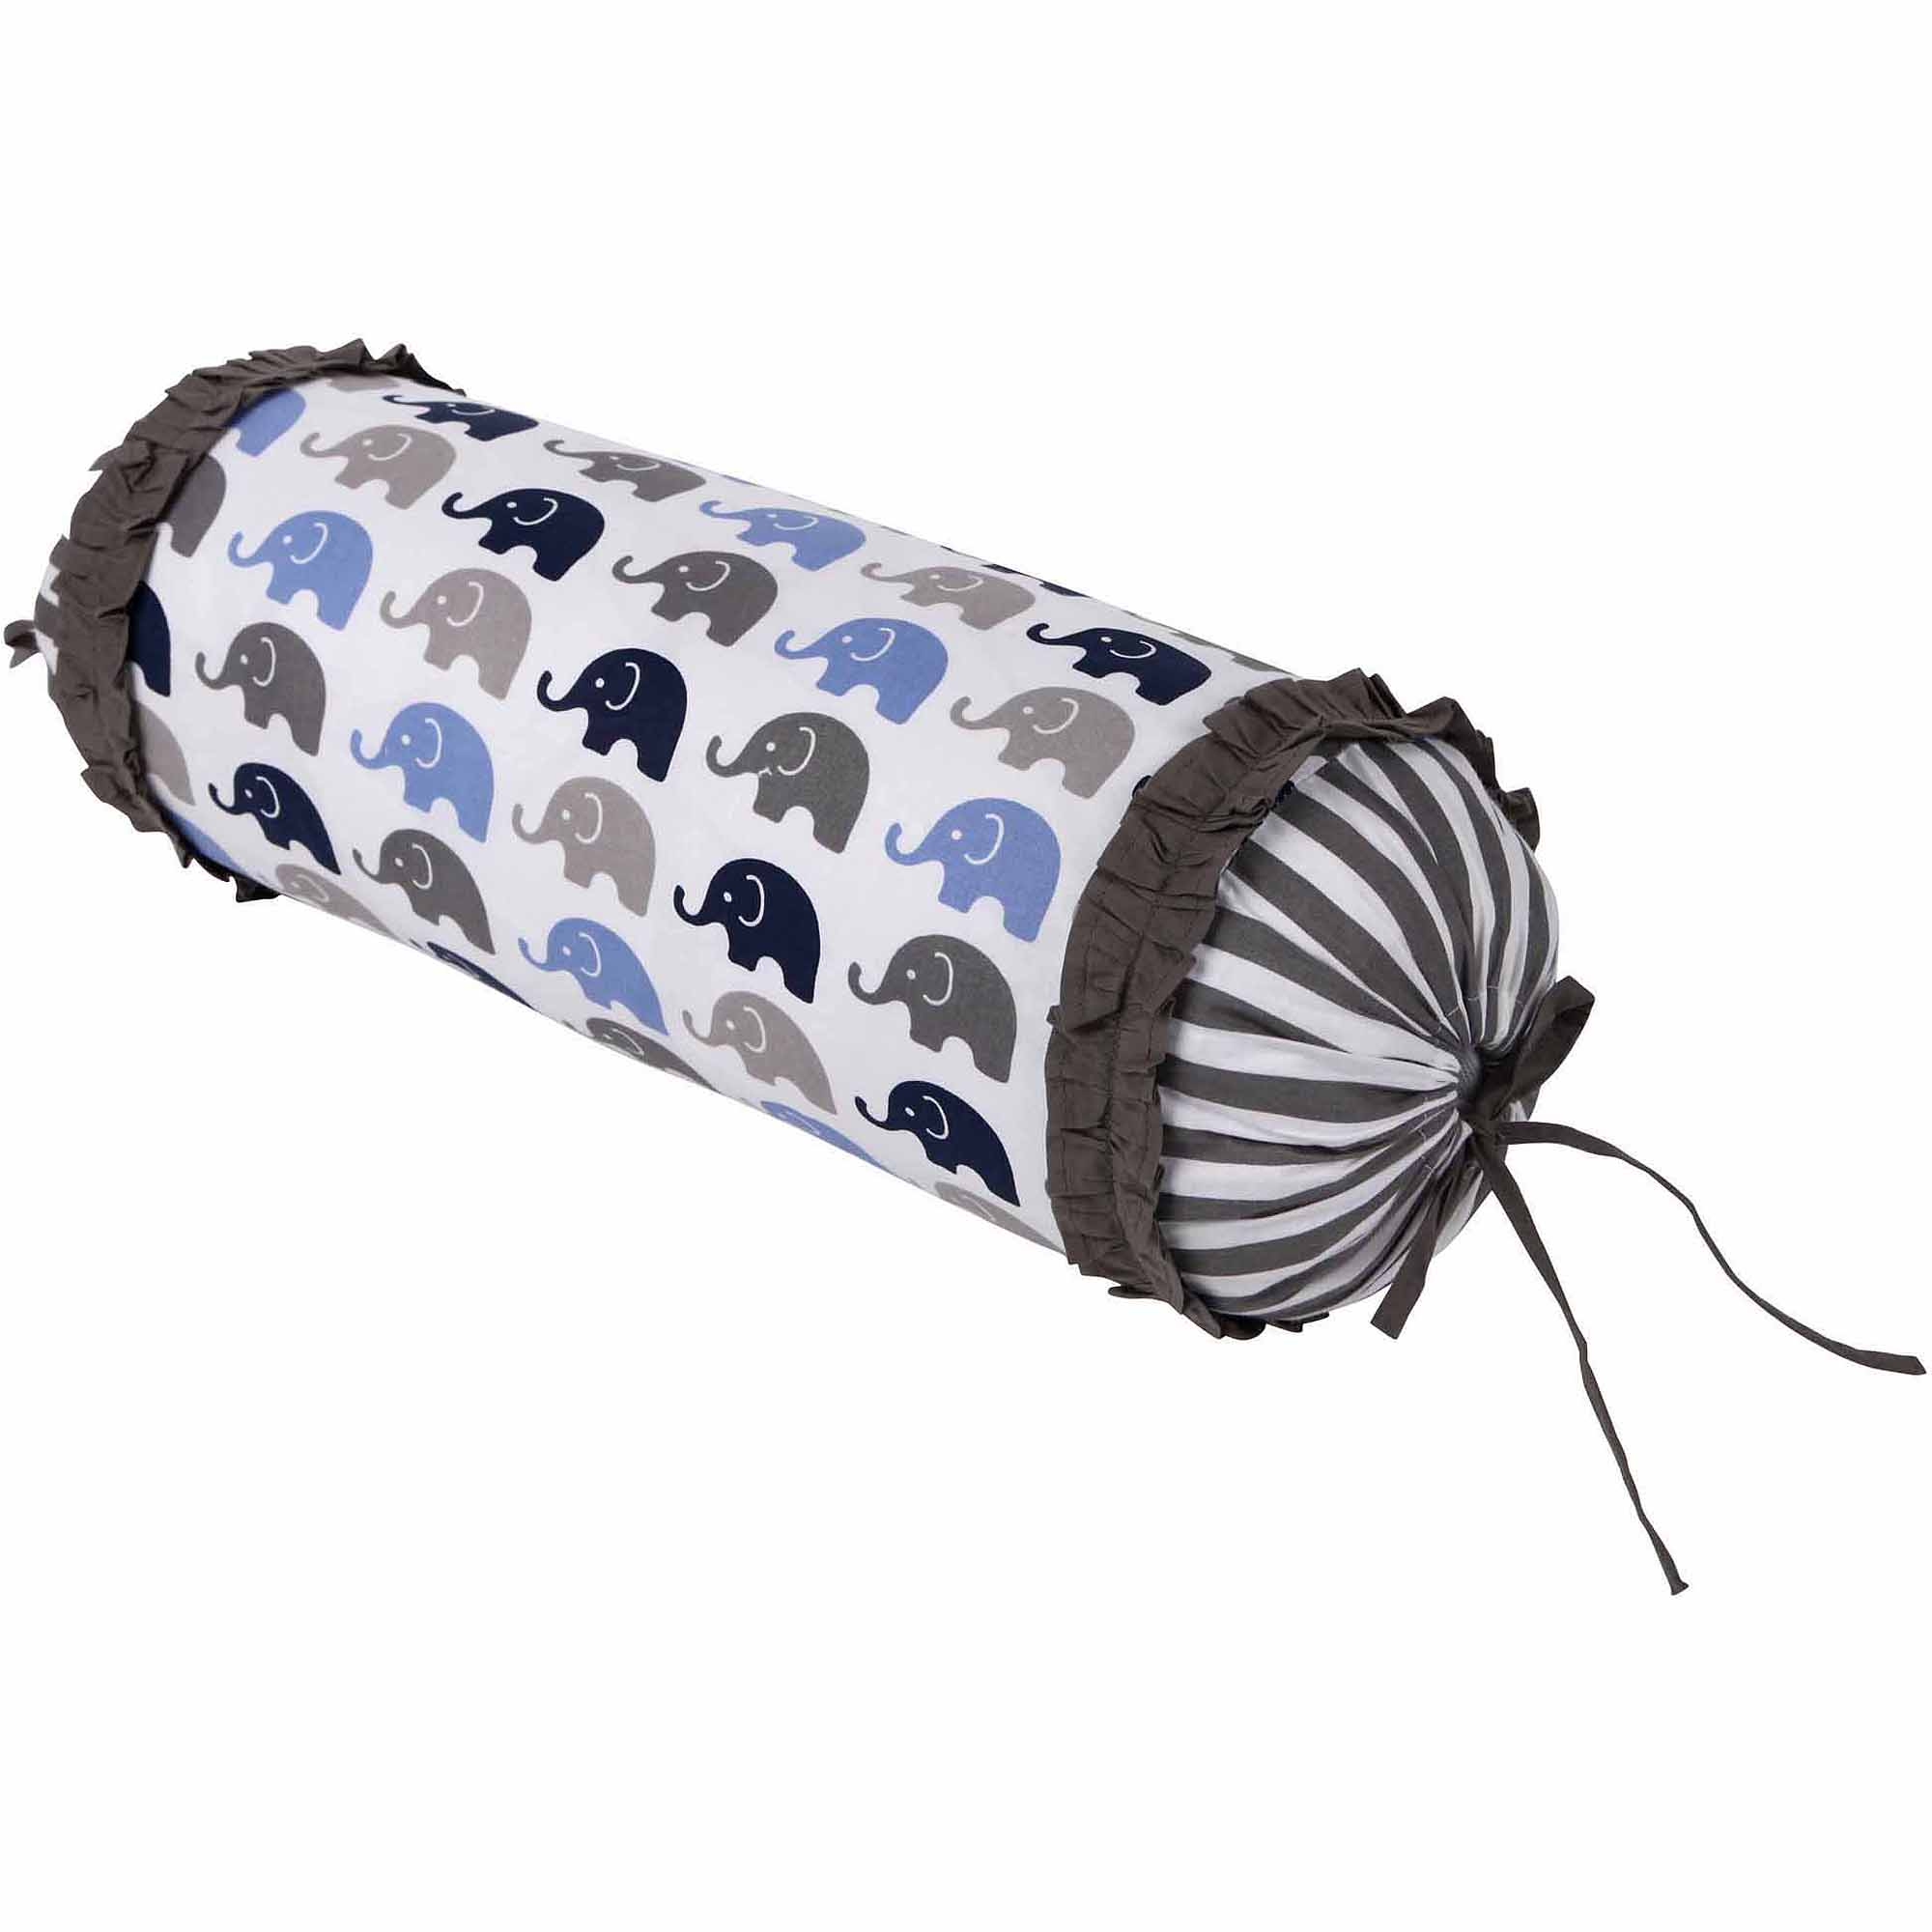 Bacati Elephants Neckroll with 100% Cotton cover and polyfilled insert Pillow, Blue/Gray